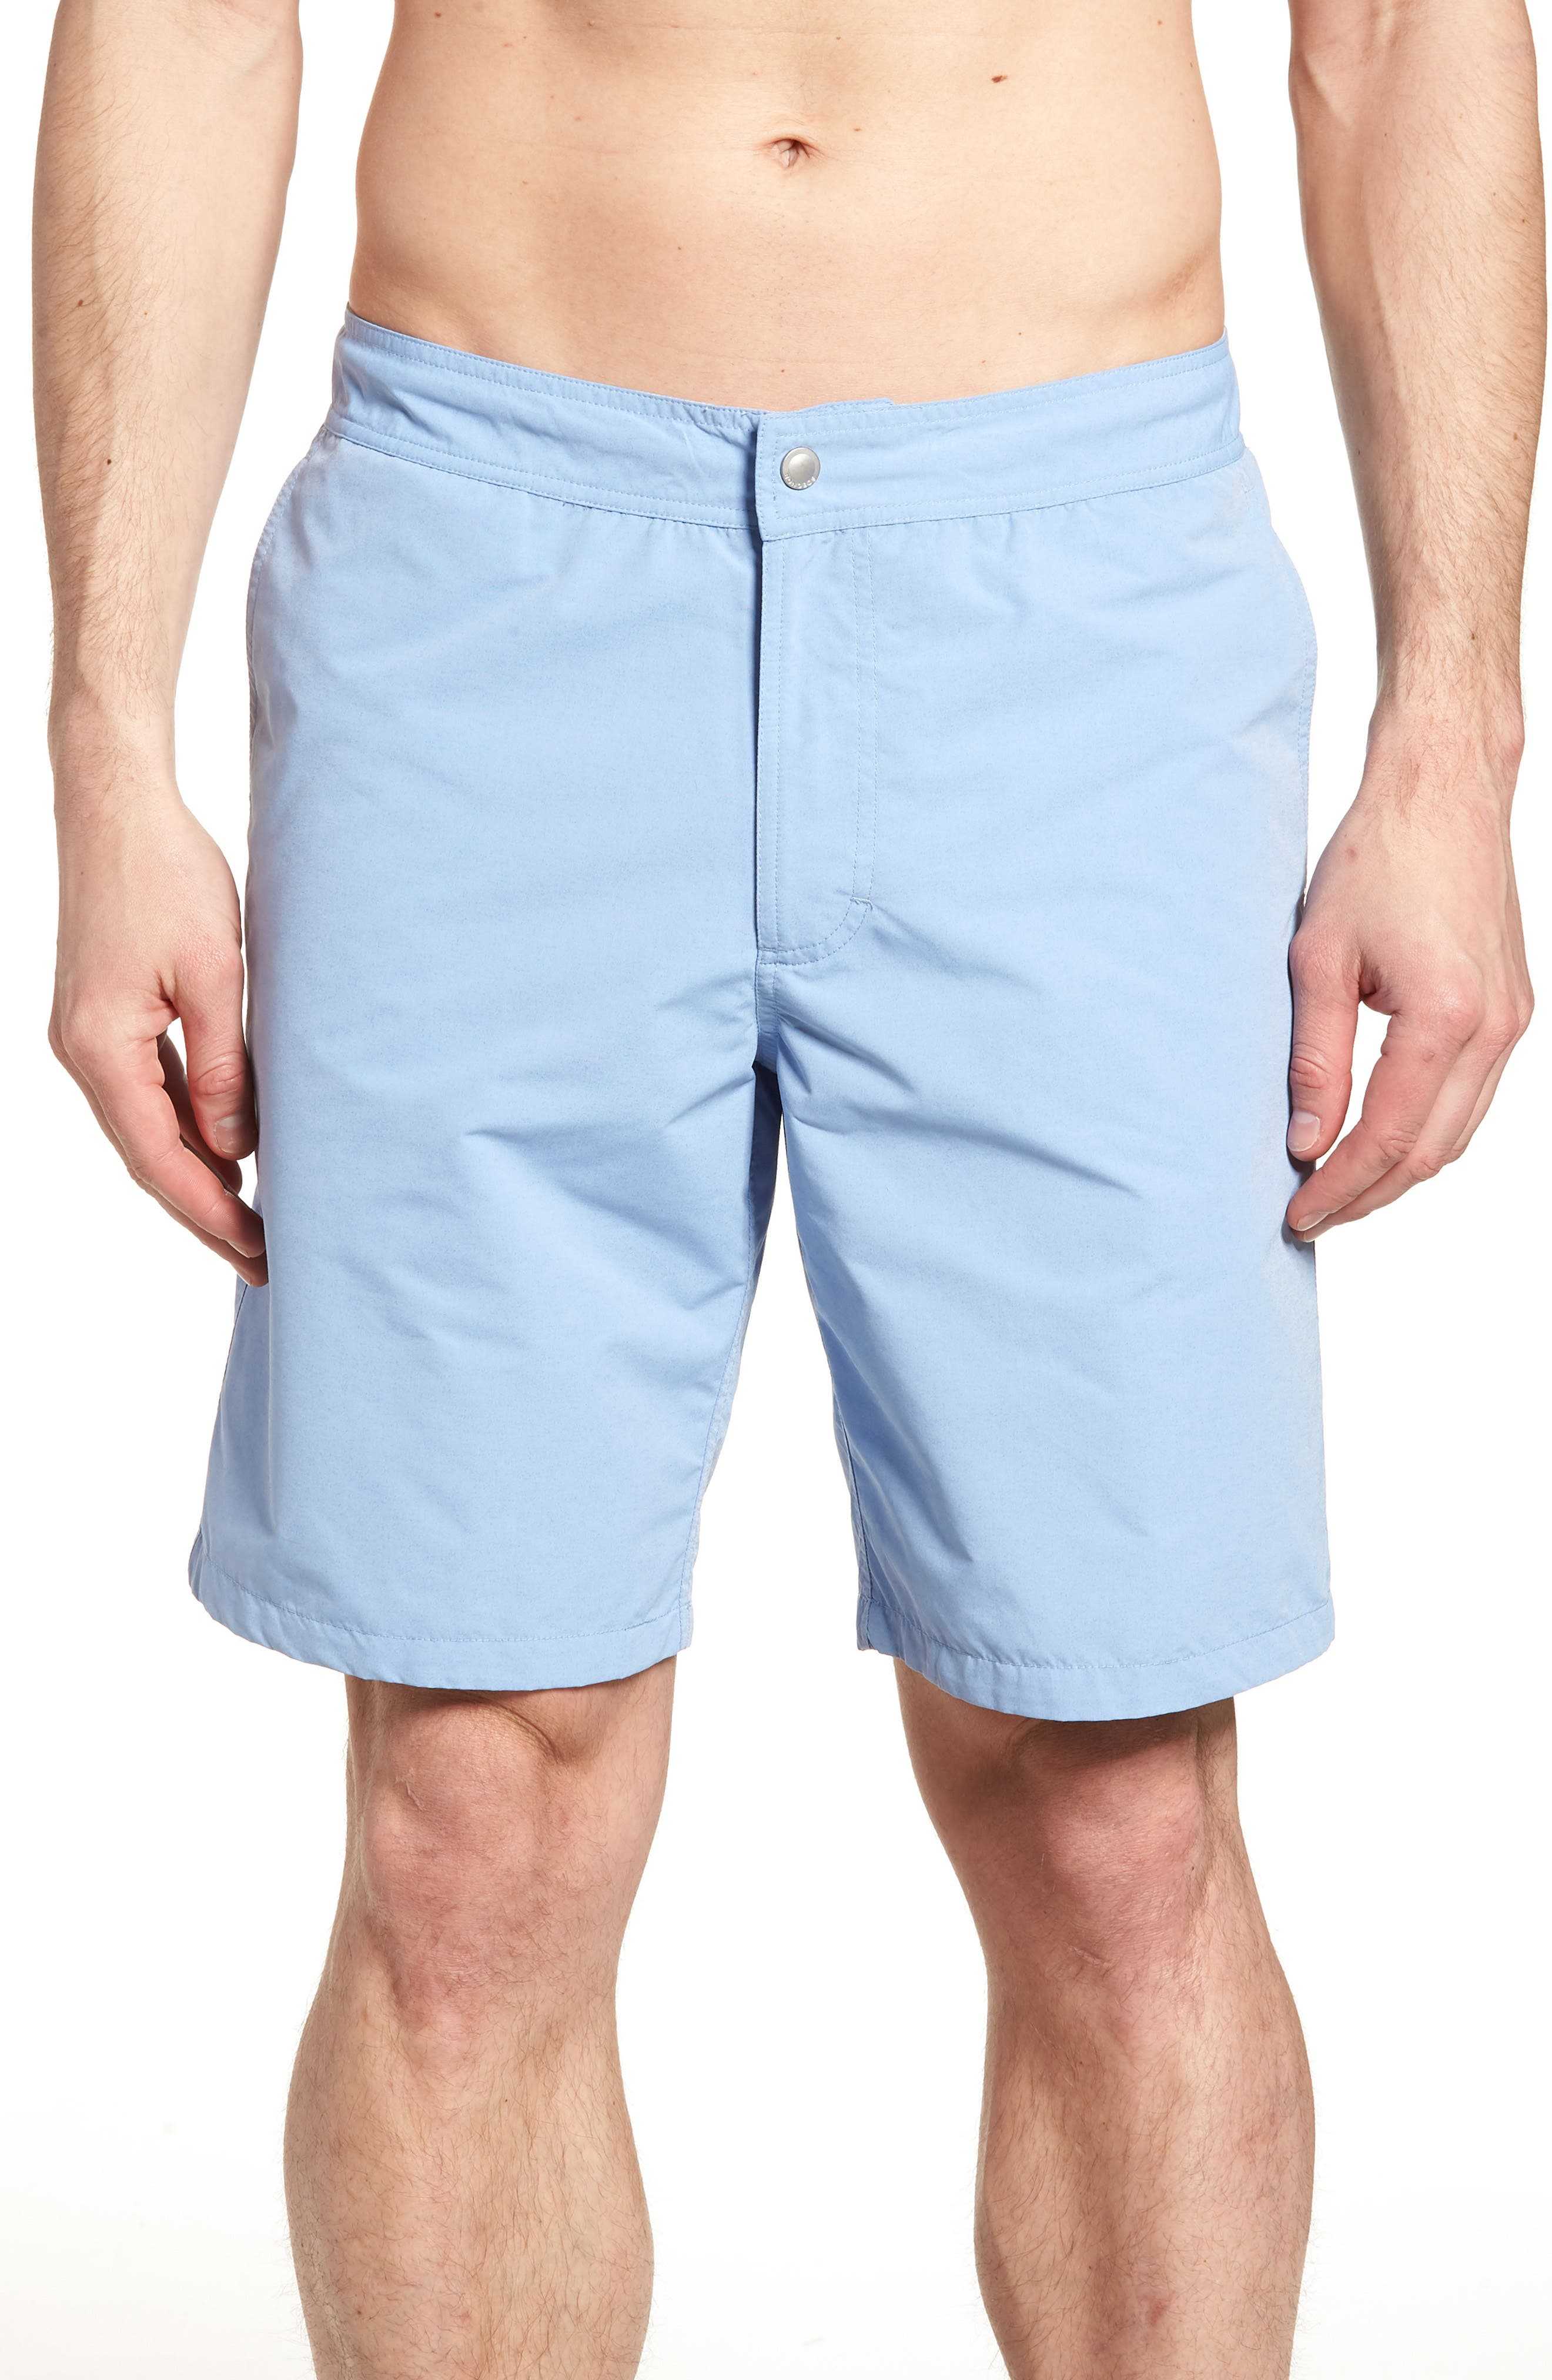 Alternate Image 1 Selected - Bonobos Banzai 9-Inch Swim Trunks